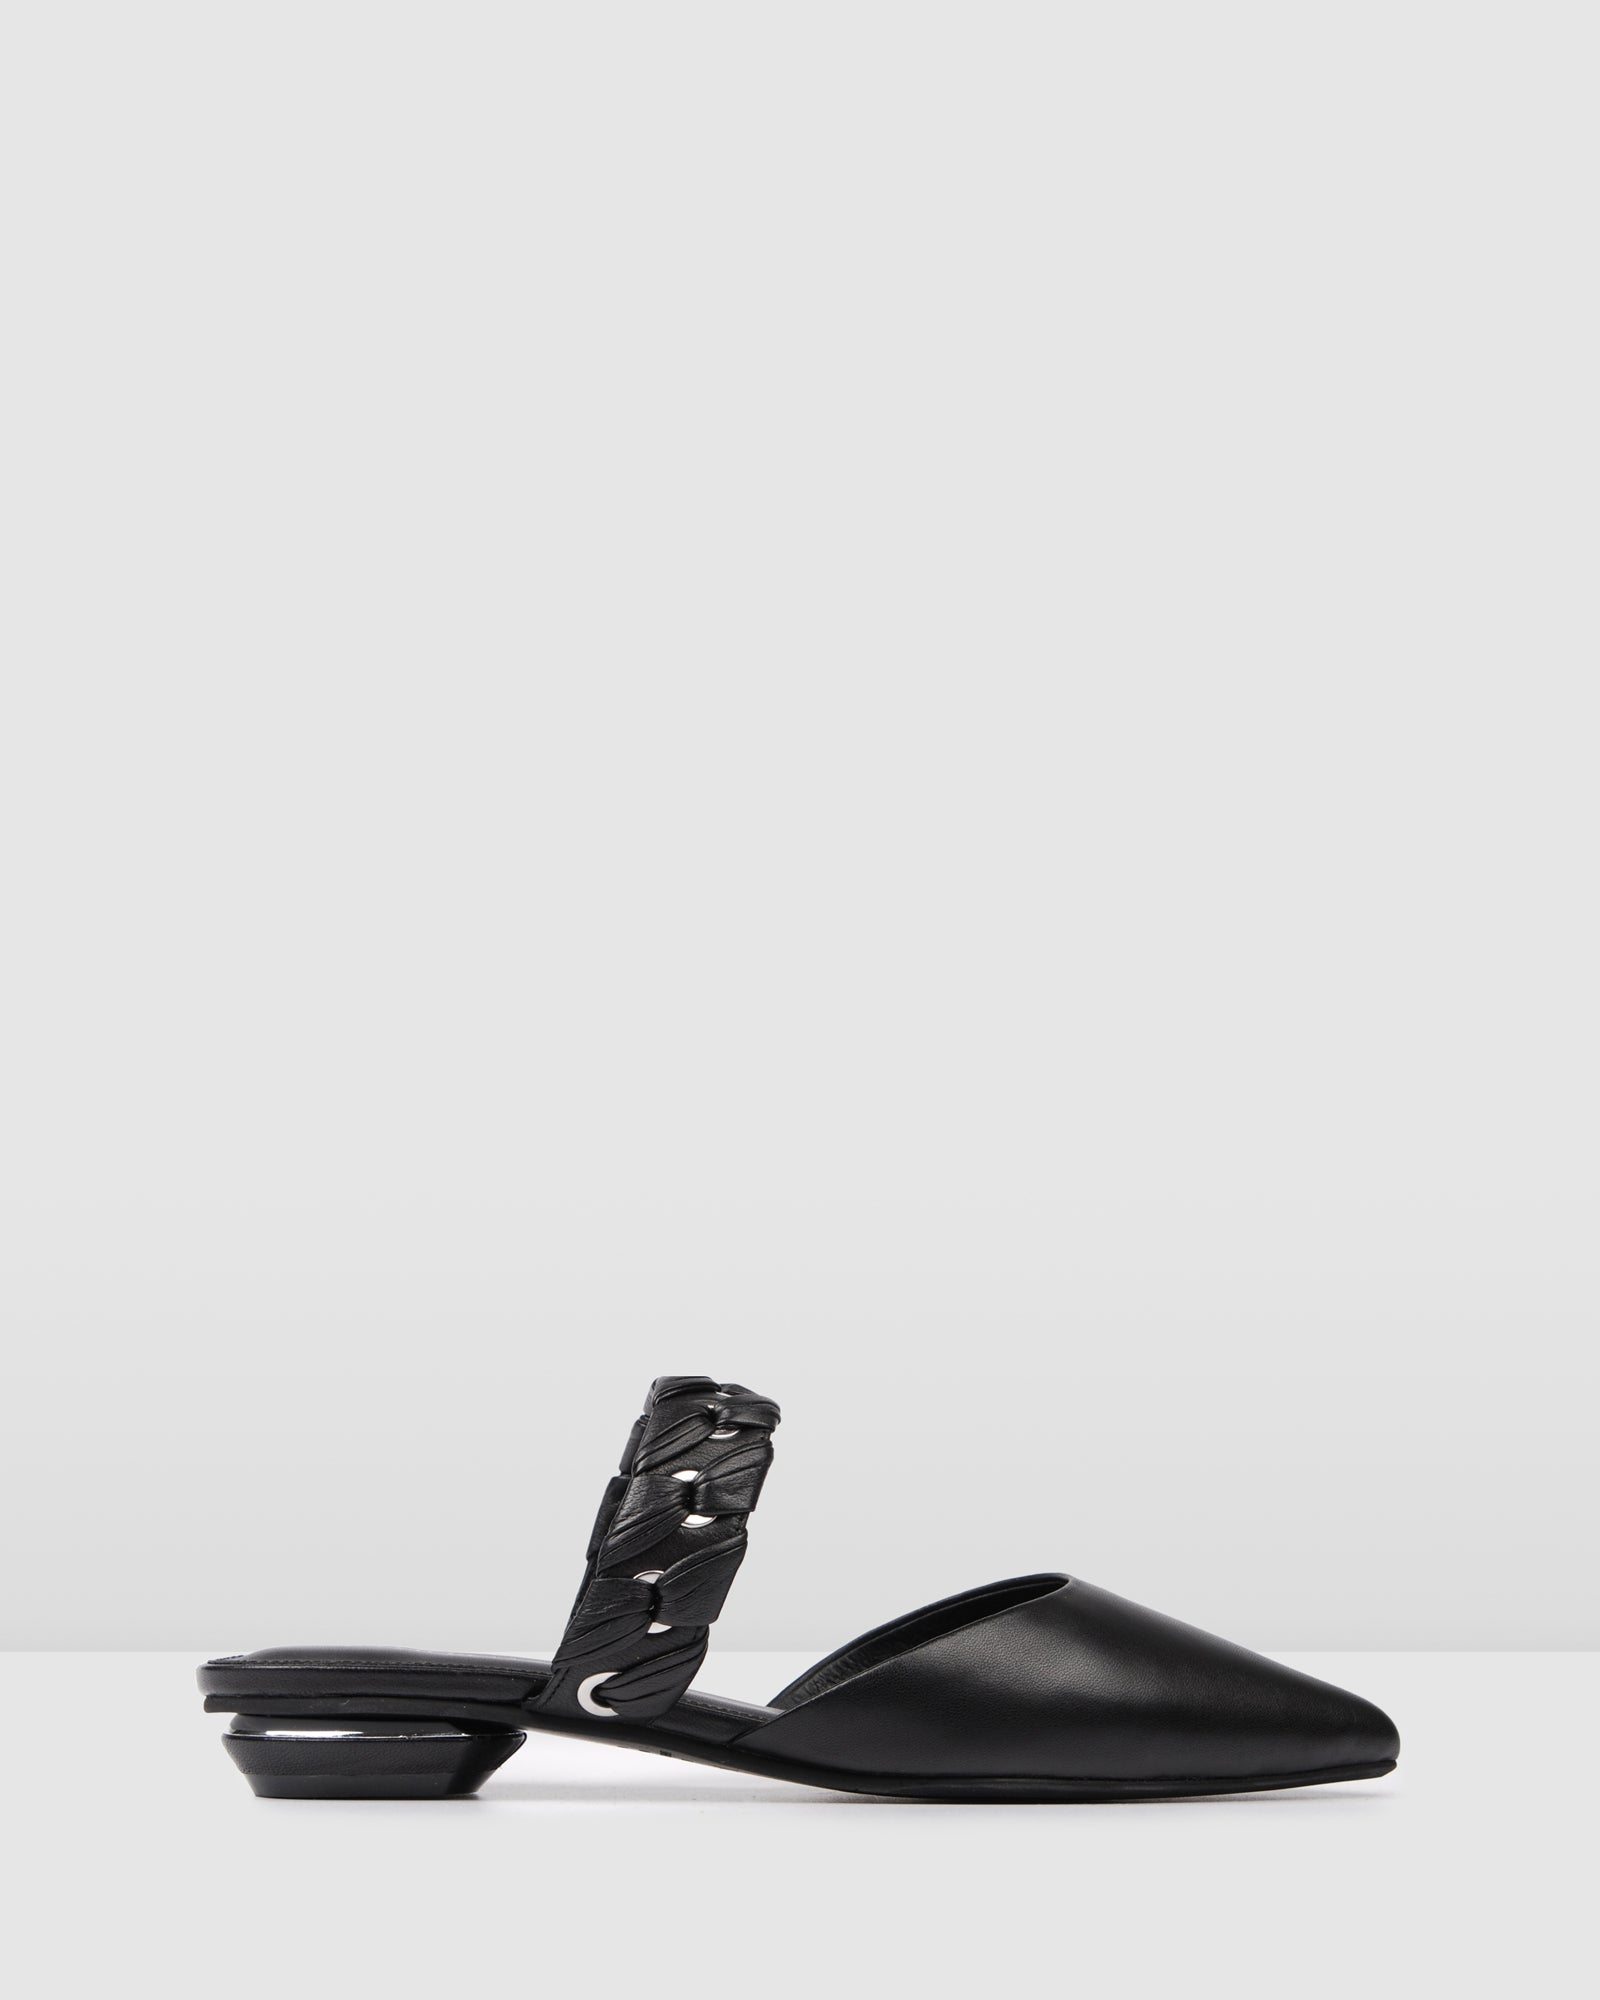 CADENCE DRESS FLATS BLACK LEATHER